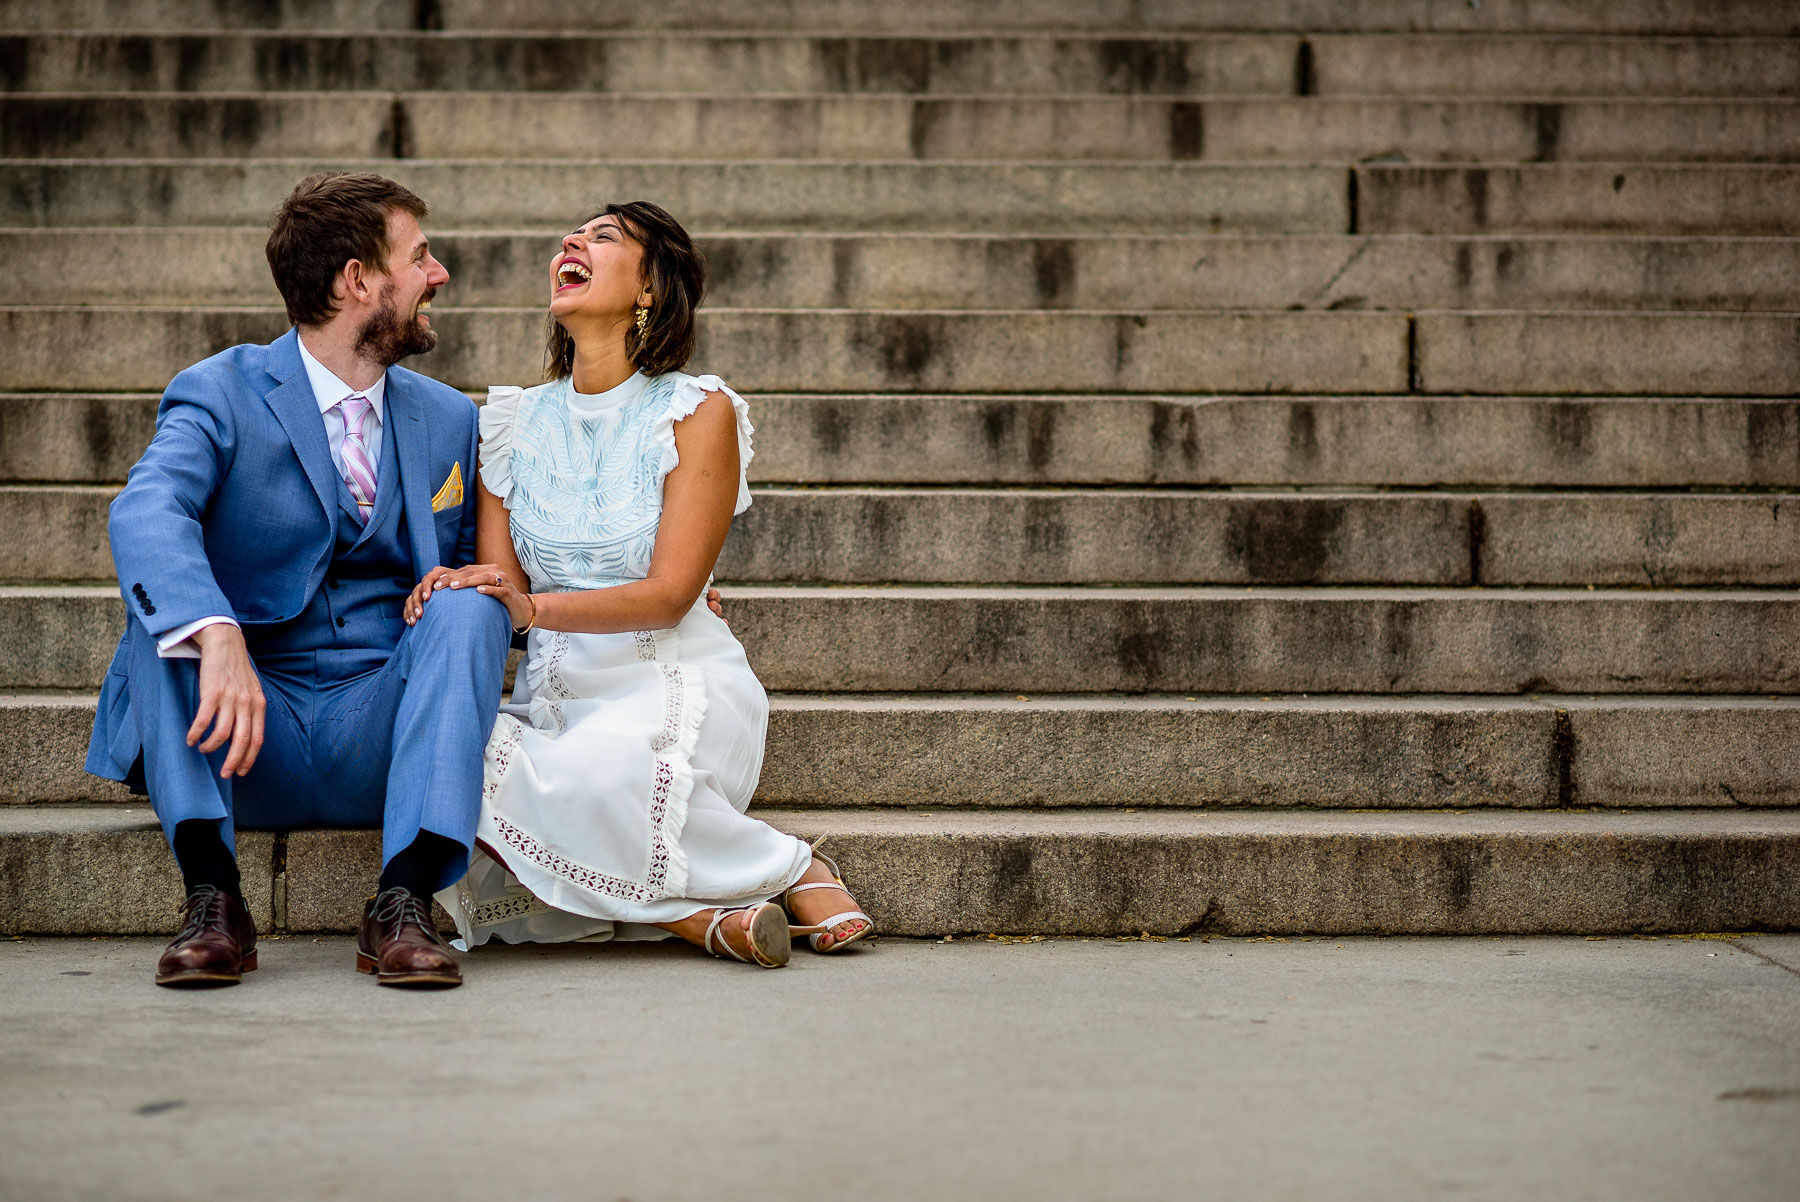 Central Park NYC Wedding portrait bethesda terrace steps